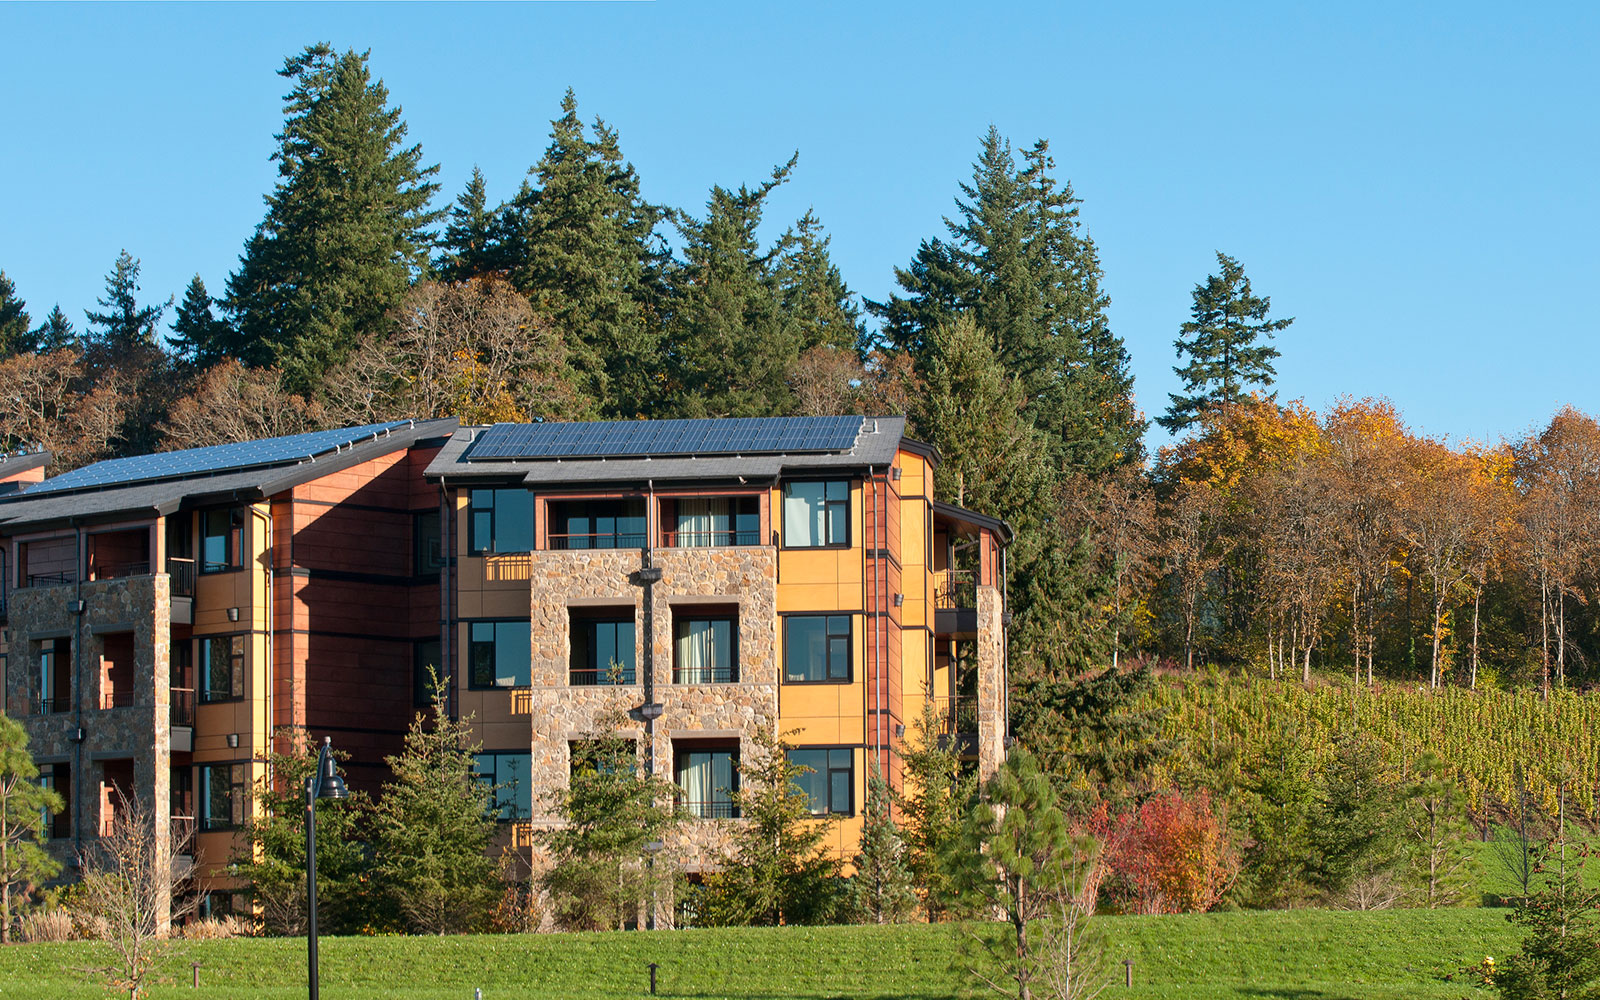 World's Top 50 Hotels: Allison Inn & Spa, Newberg, Oregon